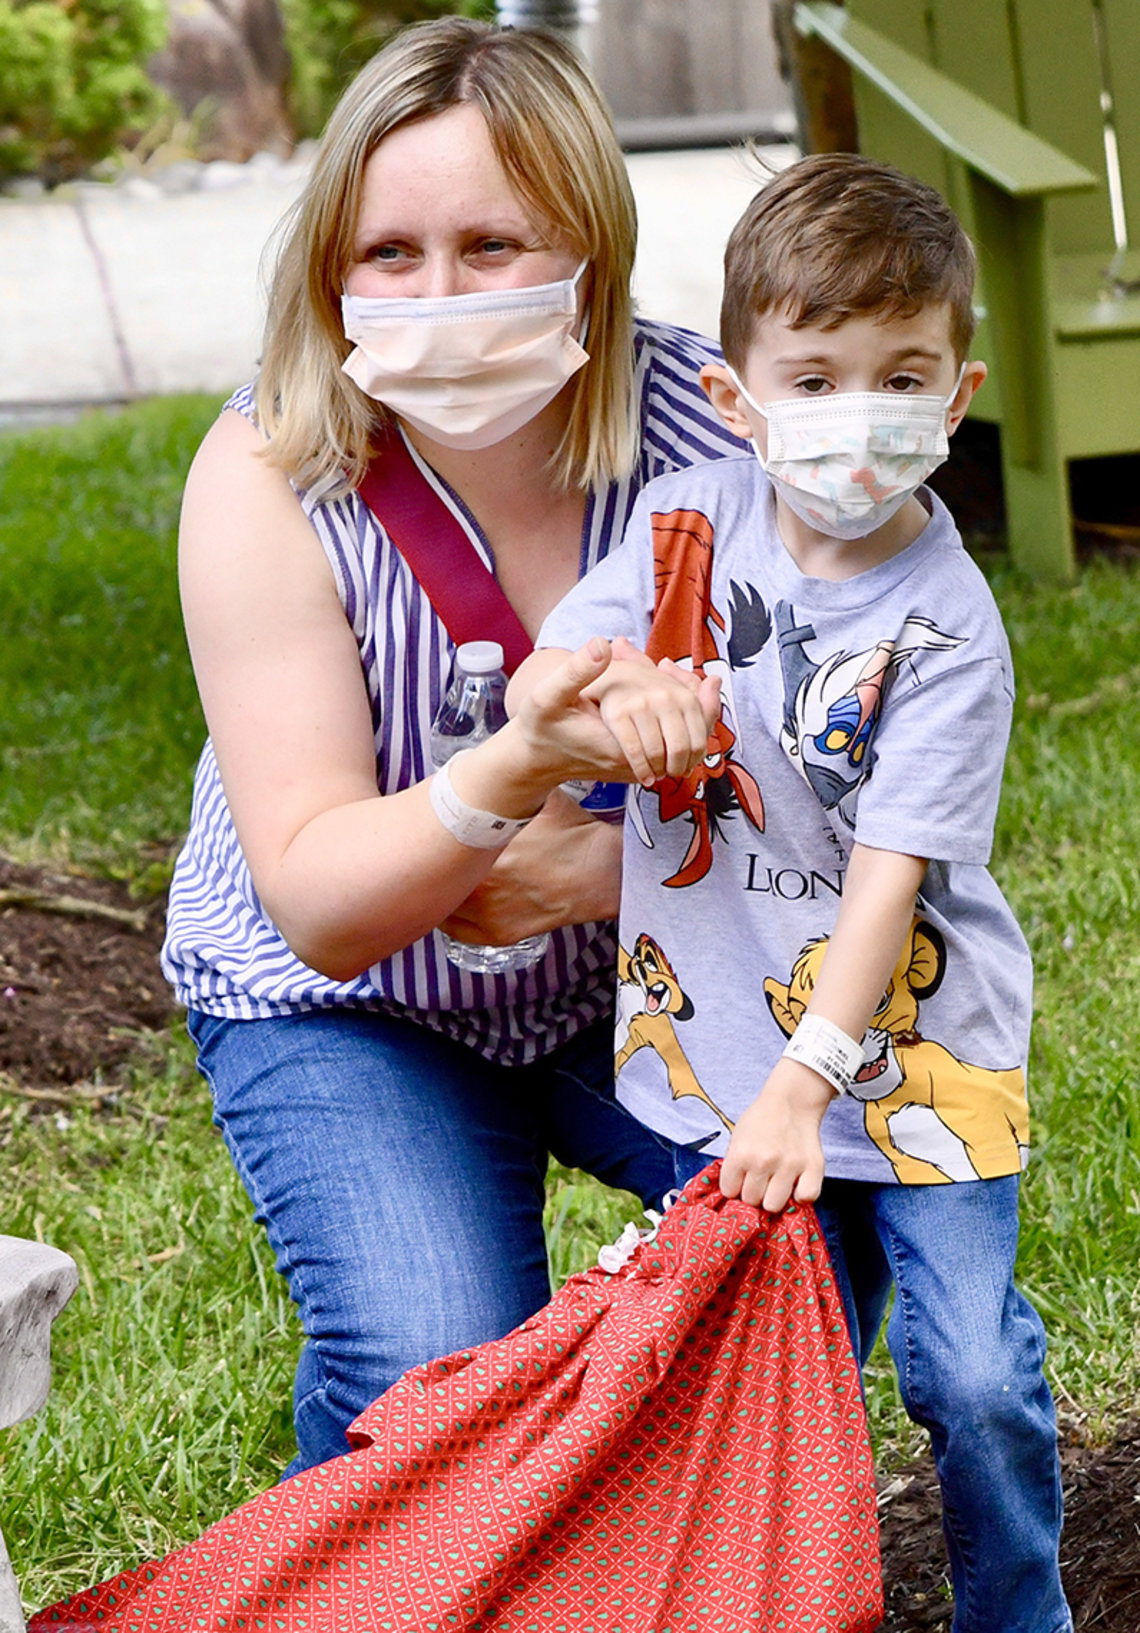 A woman stoops next to a little boy and holds his hand while he holds a bag.